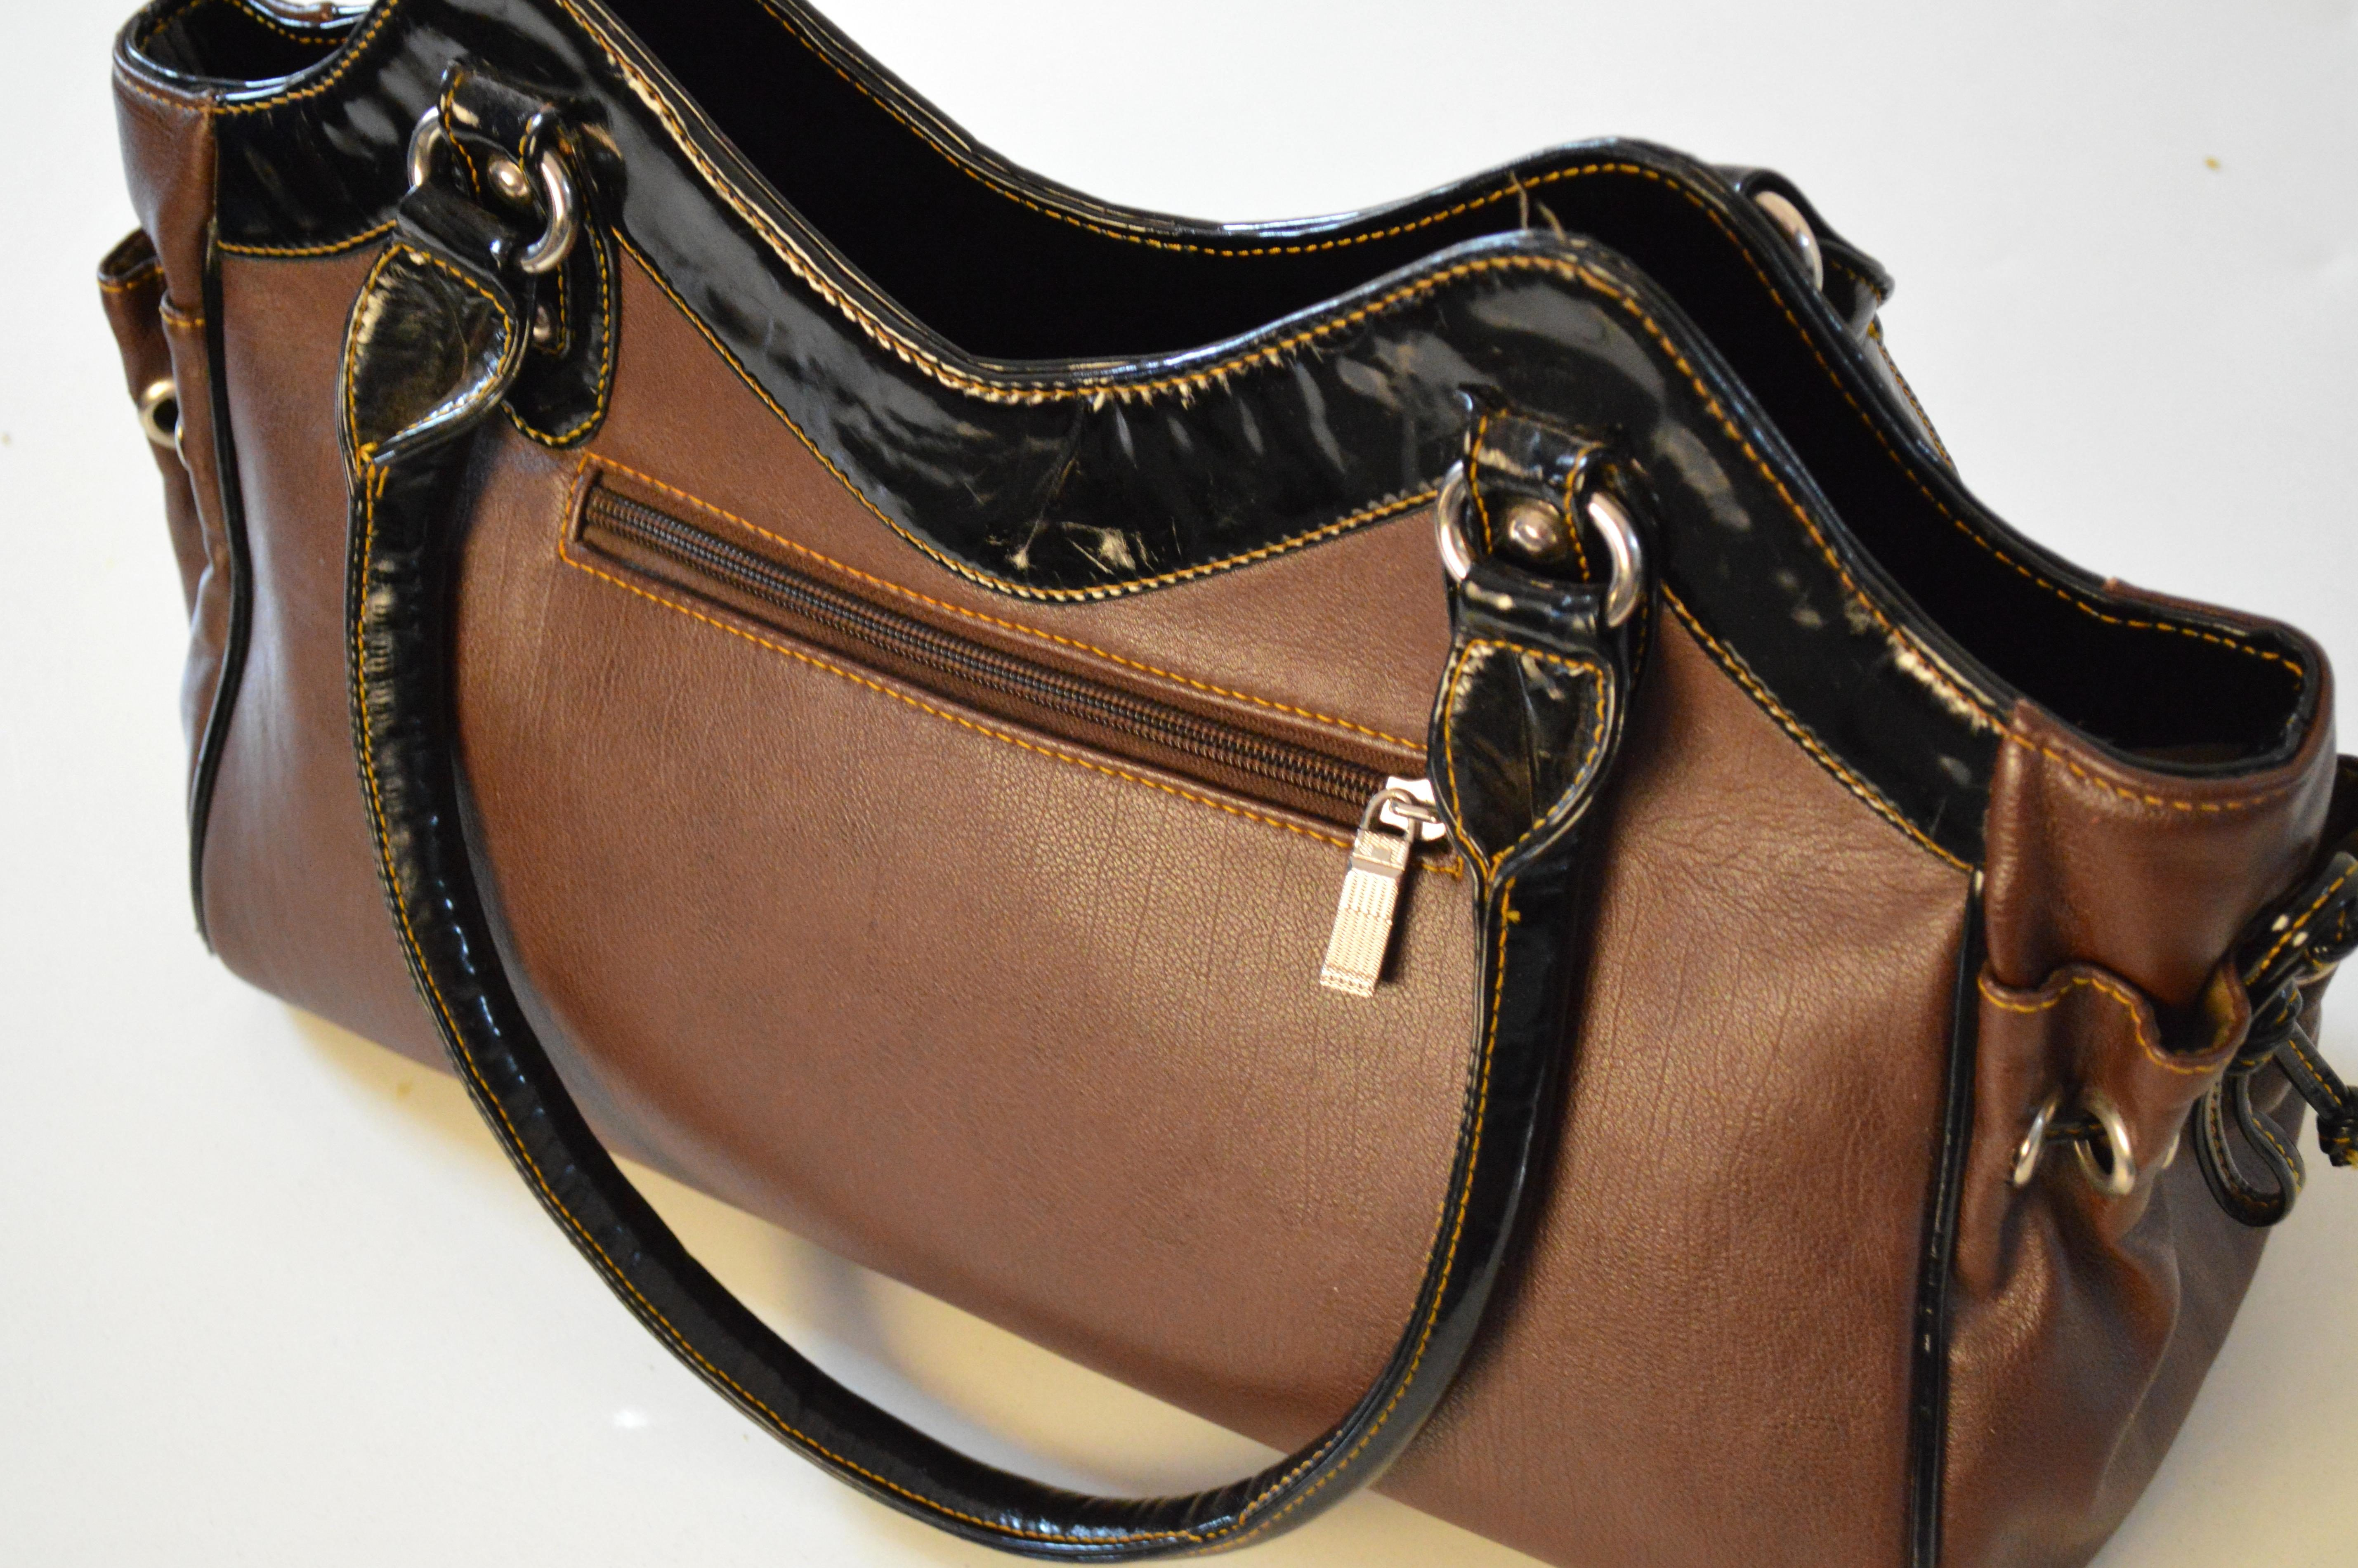 Free Picture Fashion Handbag Modern Object Leather